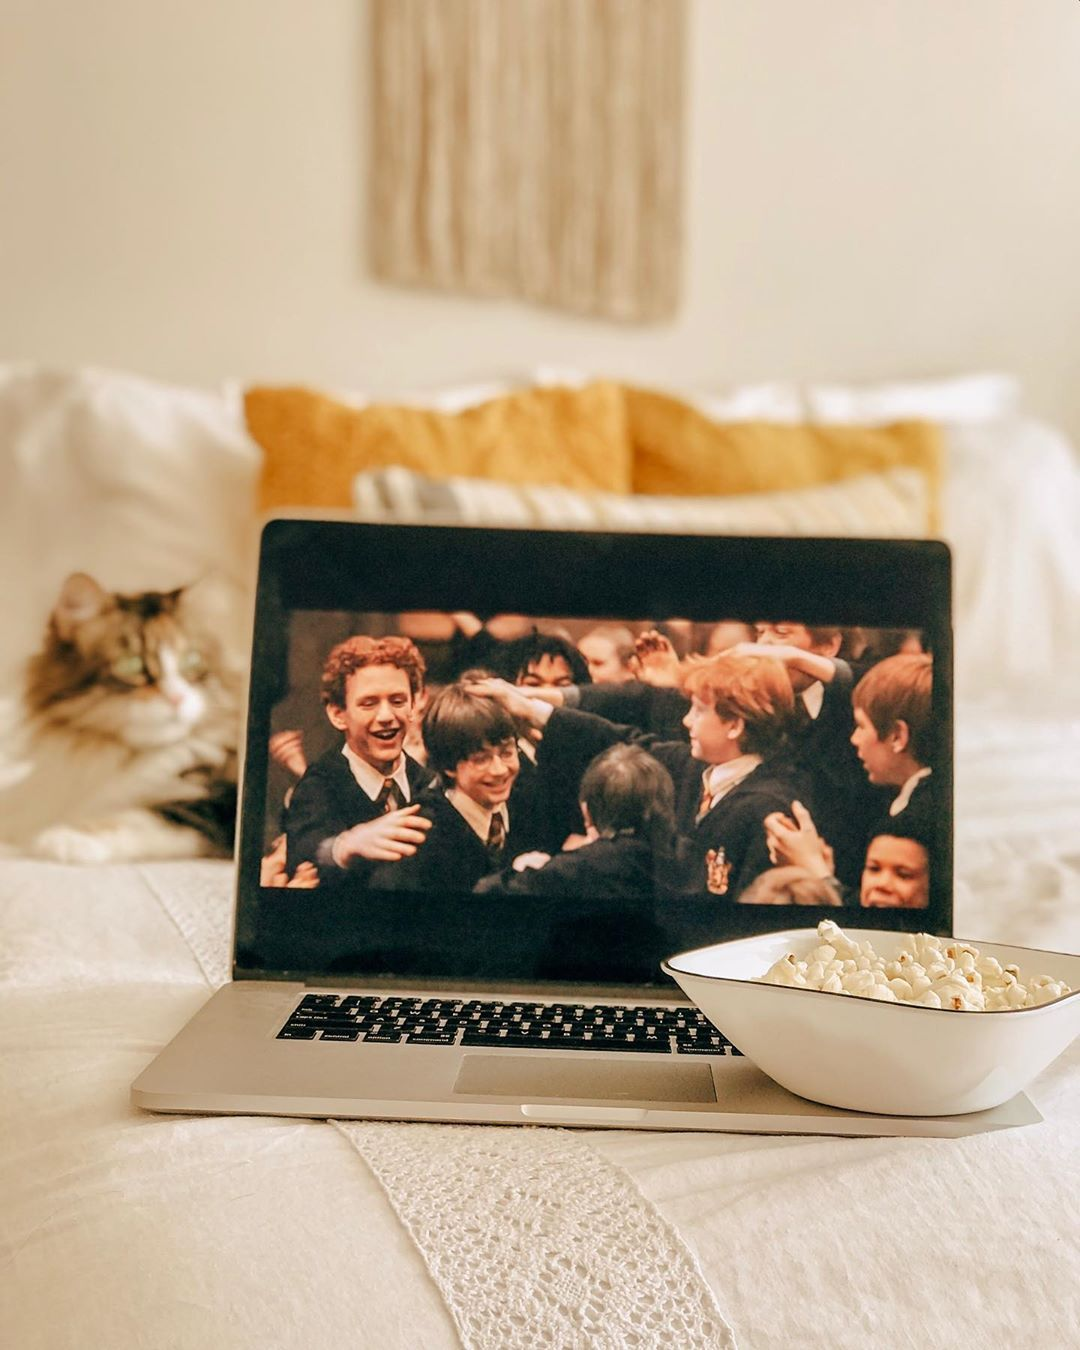 Abigailscupoftea On Instagram The Ultimate Cozy Day Includes A Harry Potter Film Of Cou Harry Potter Photography Harry Potter Aesthetic Harry Potter Movies